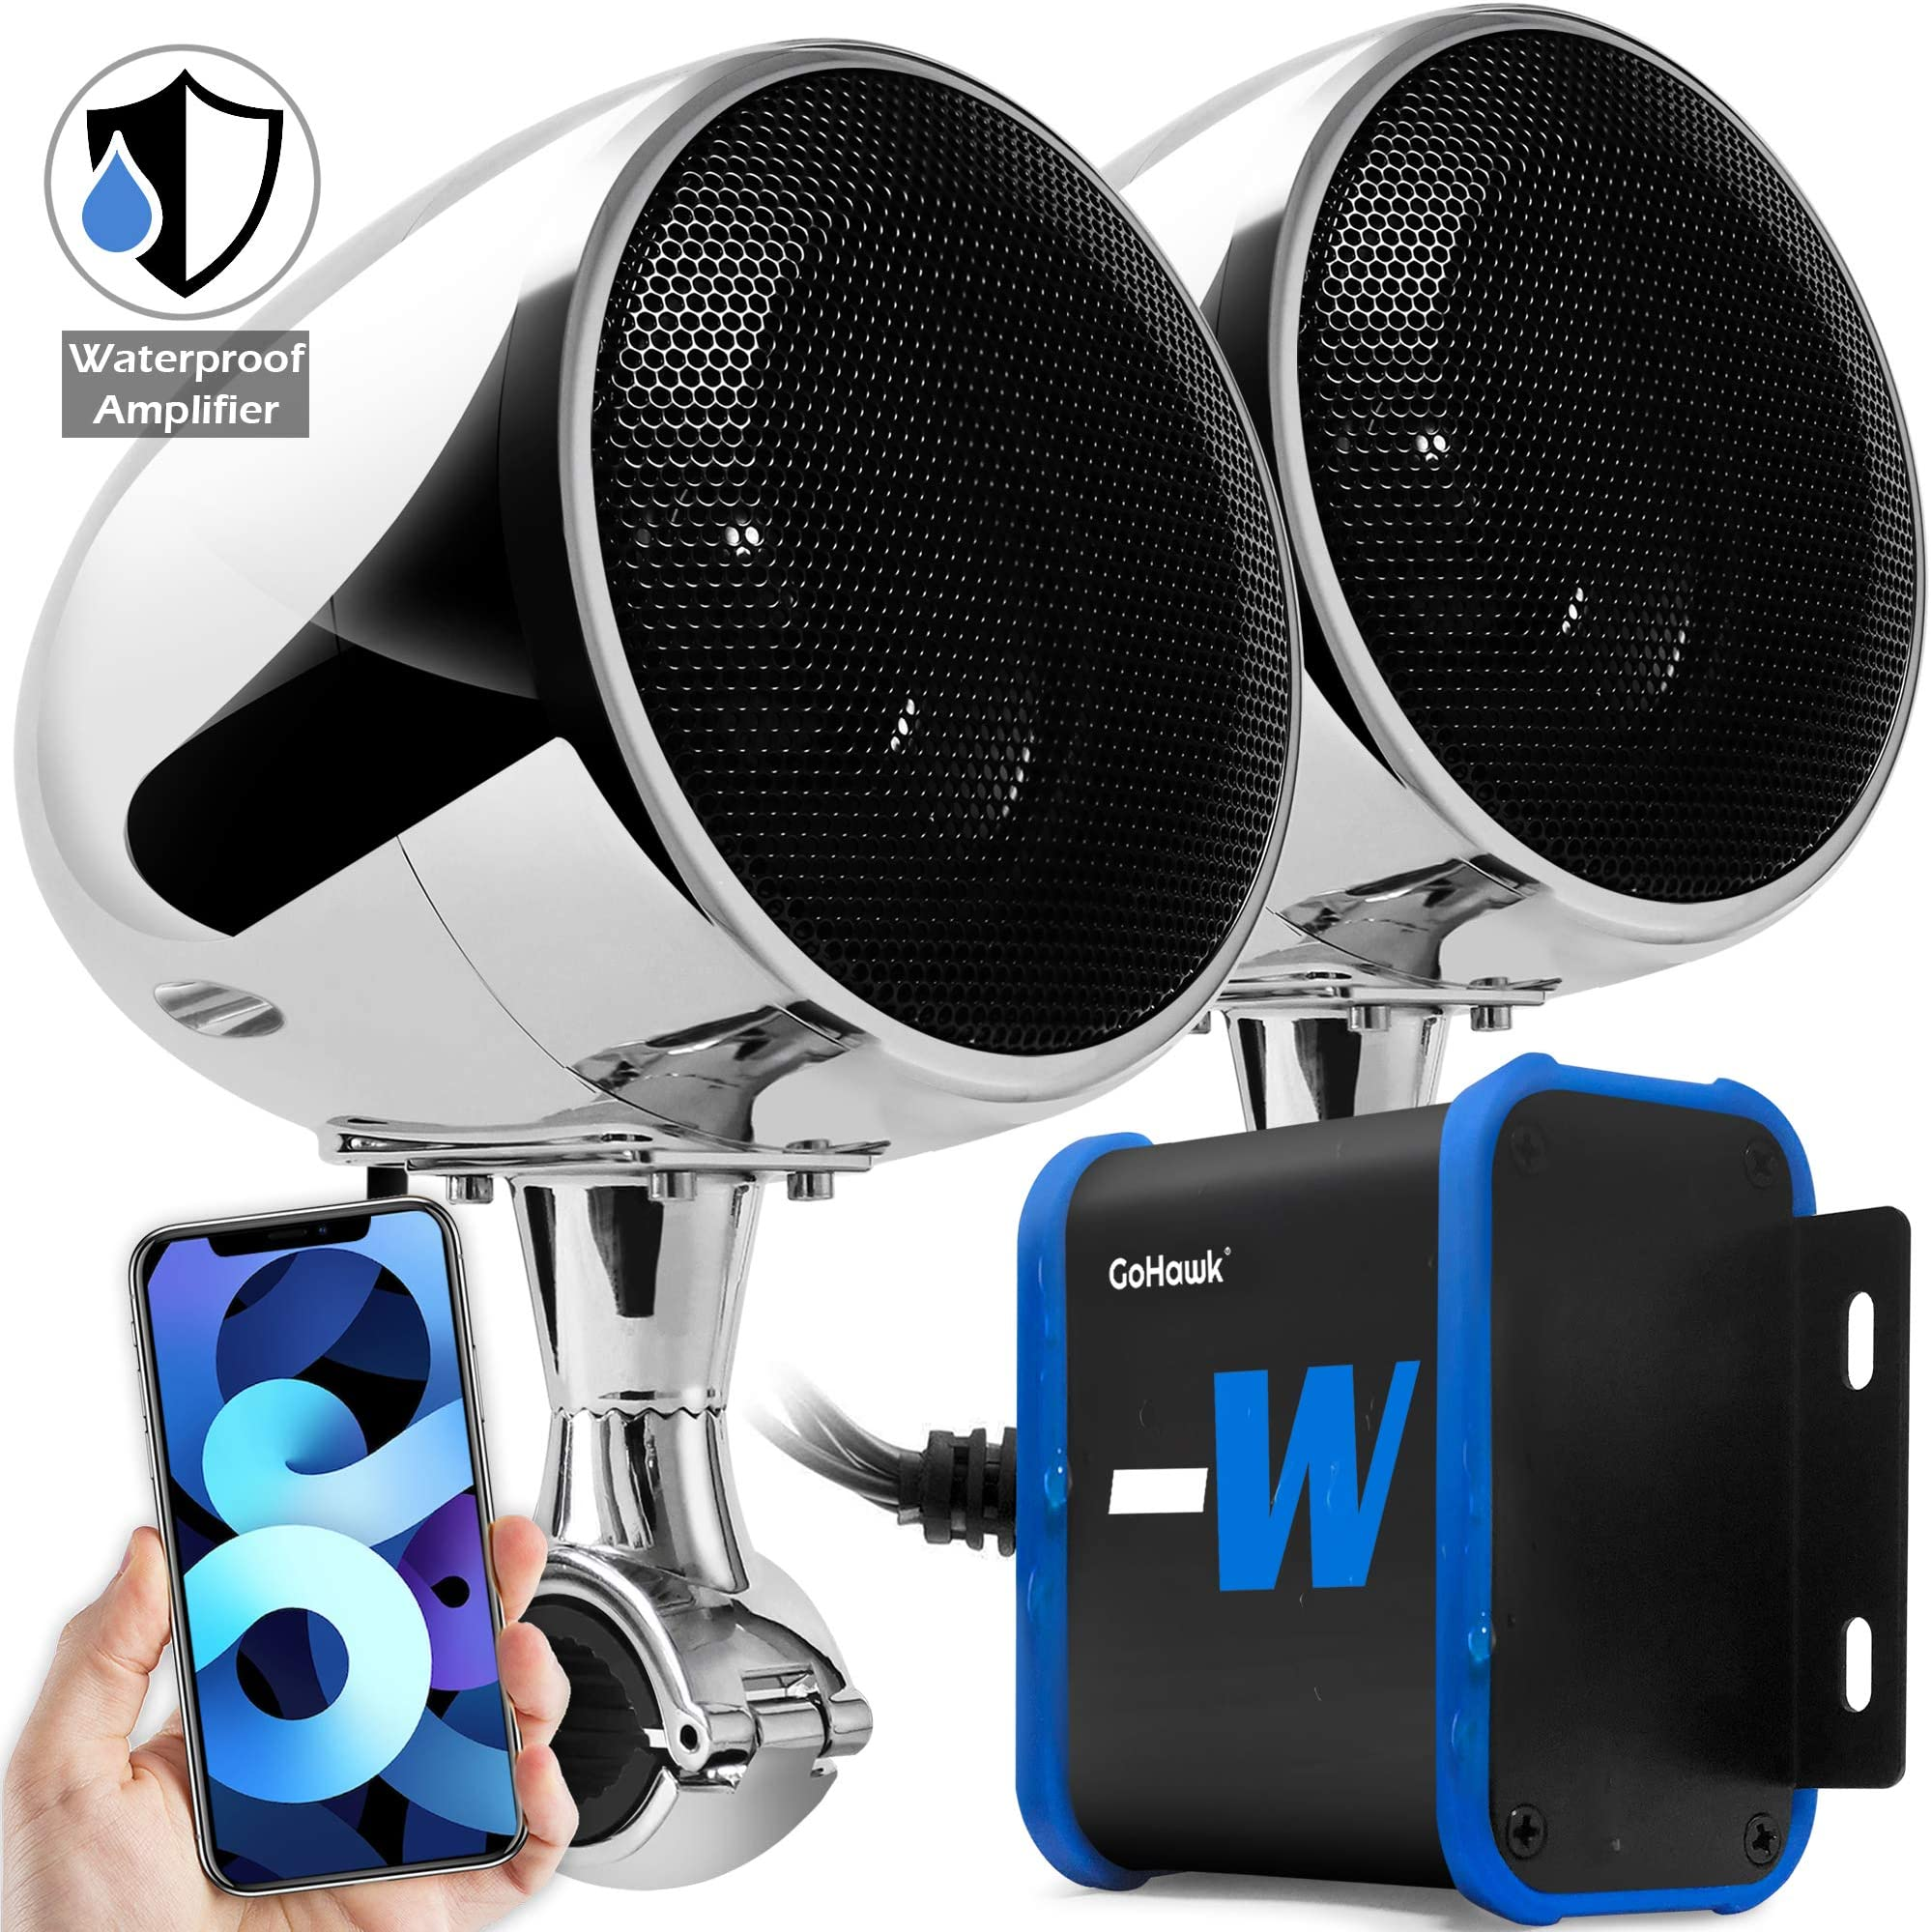 "GoHawk TN4-W Waterproof Amplifier 4"" Full Range Bluetooth Motorcycle Stereo Speakers 1 to 1.25 in. Handlebar Mount Audio Amp System Harley Touring Cruiser ATV 4-Wheeler, USB, AUX, FM Radio"